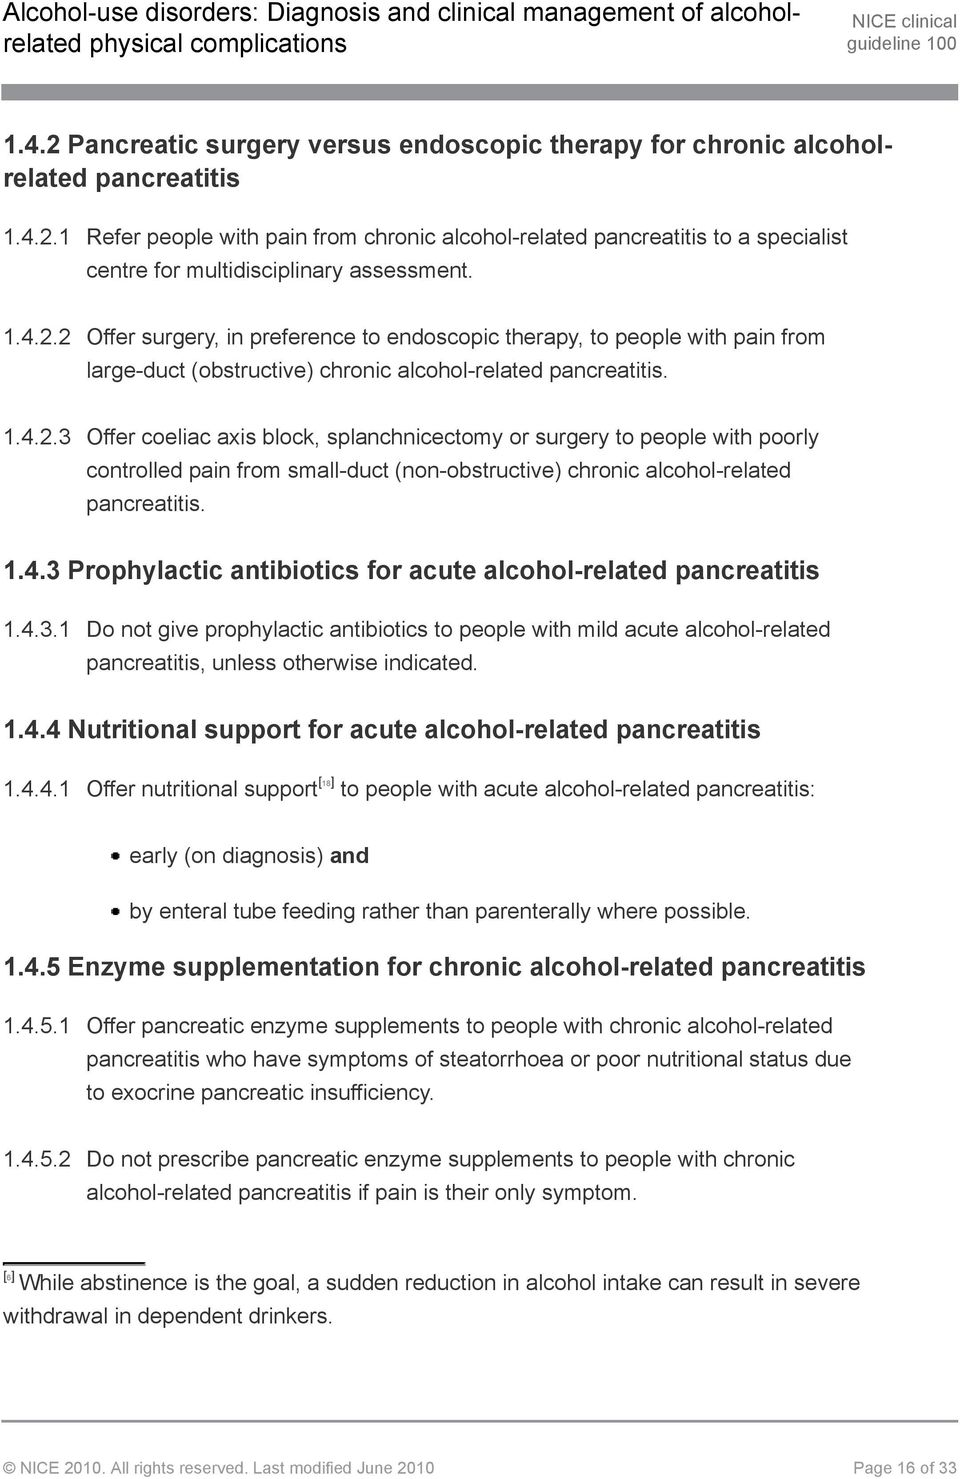 1.4.3 Prophylactic antibiotics for acute alcohol-related pancreatitis 1.4.3.1 Do not give prophylactic antibiotics to people with mild acute alcohol-related pancreatitis, unless otherwise indicated.